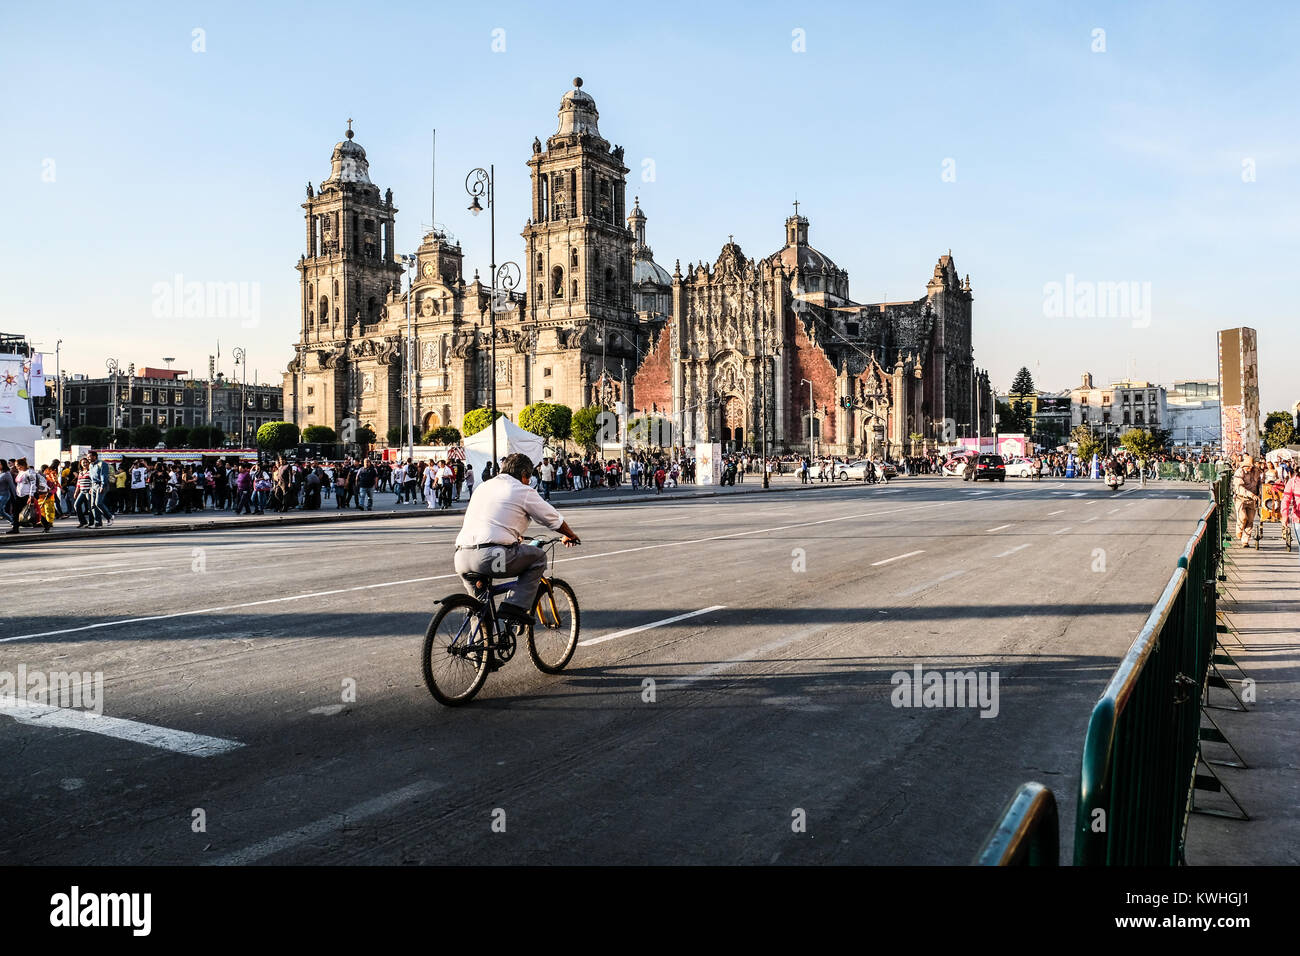 A lone cyclist riding on empty street by Zocalo square Mexico City - Stock Image